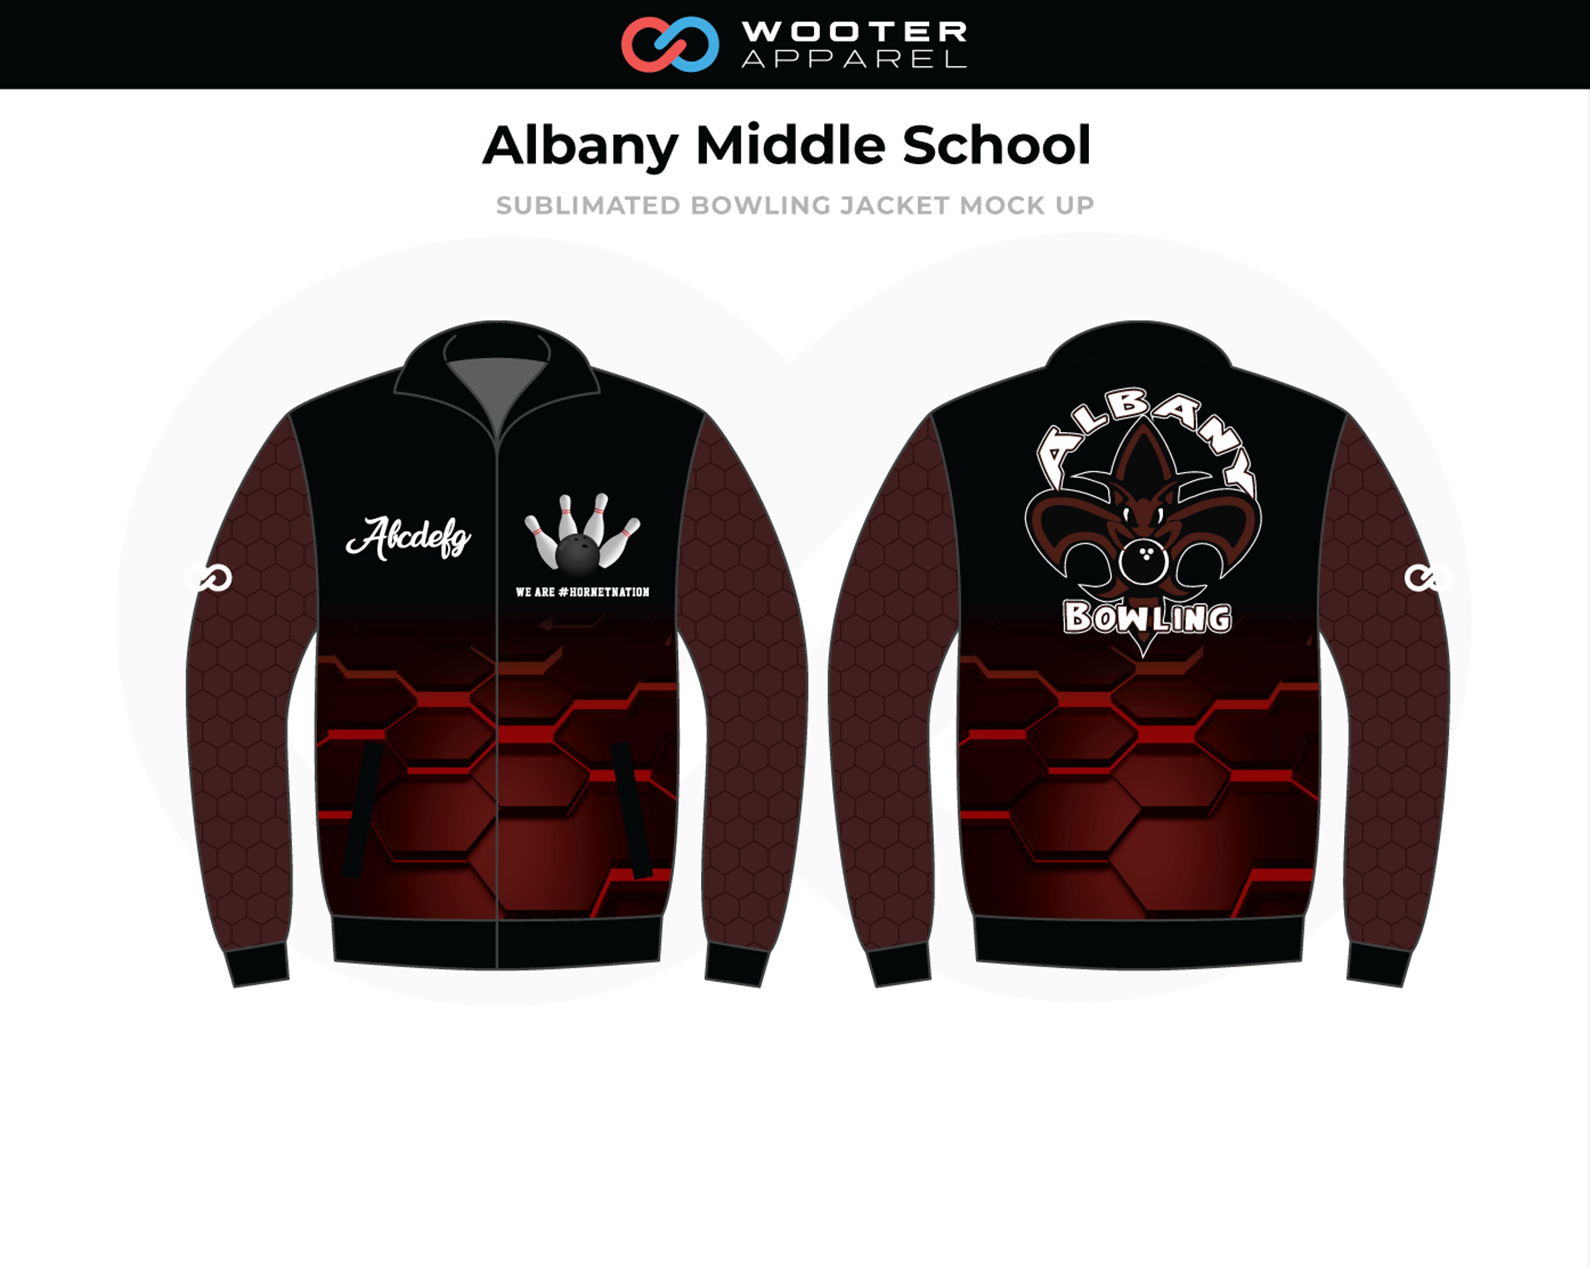 Albany-Middle-School--Bowling-Sublimated-Bowling-Jacket-Mock-Up_v1_2018.png